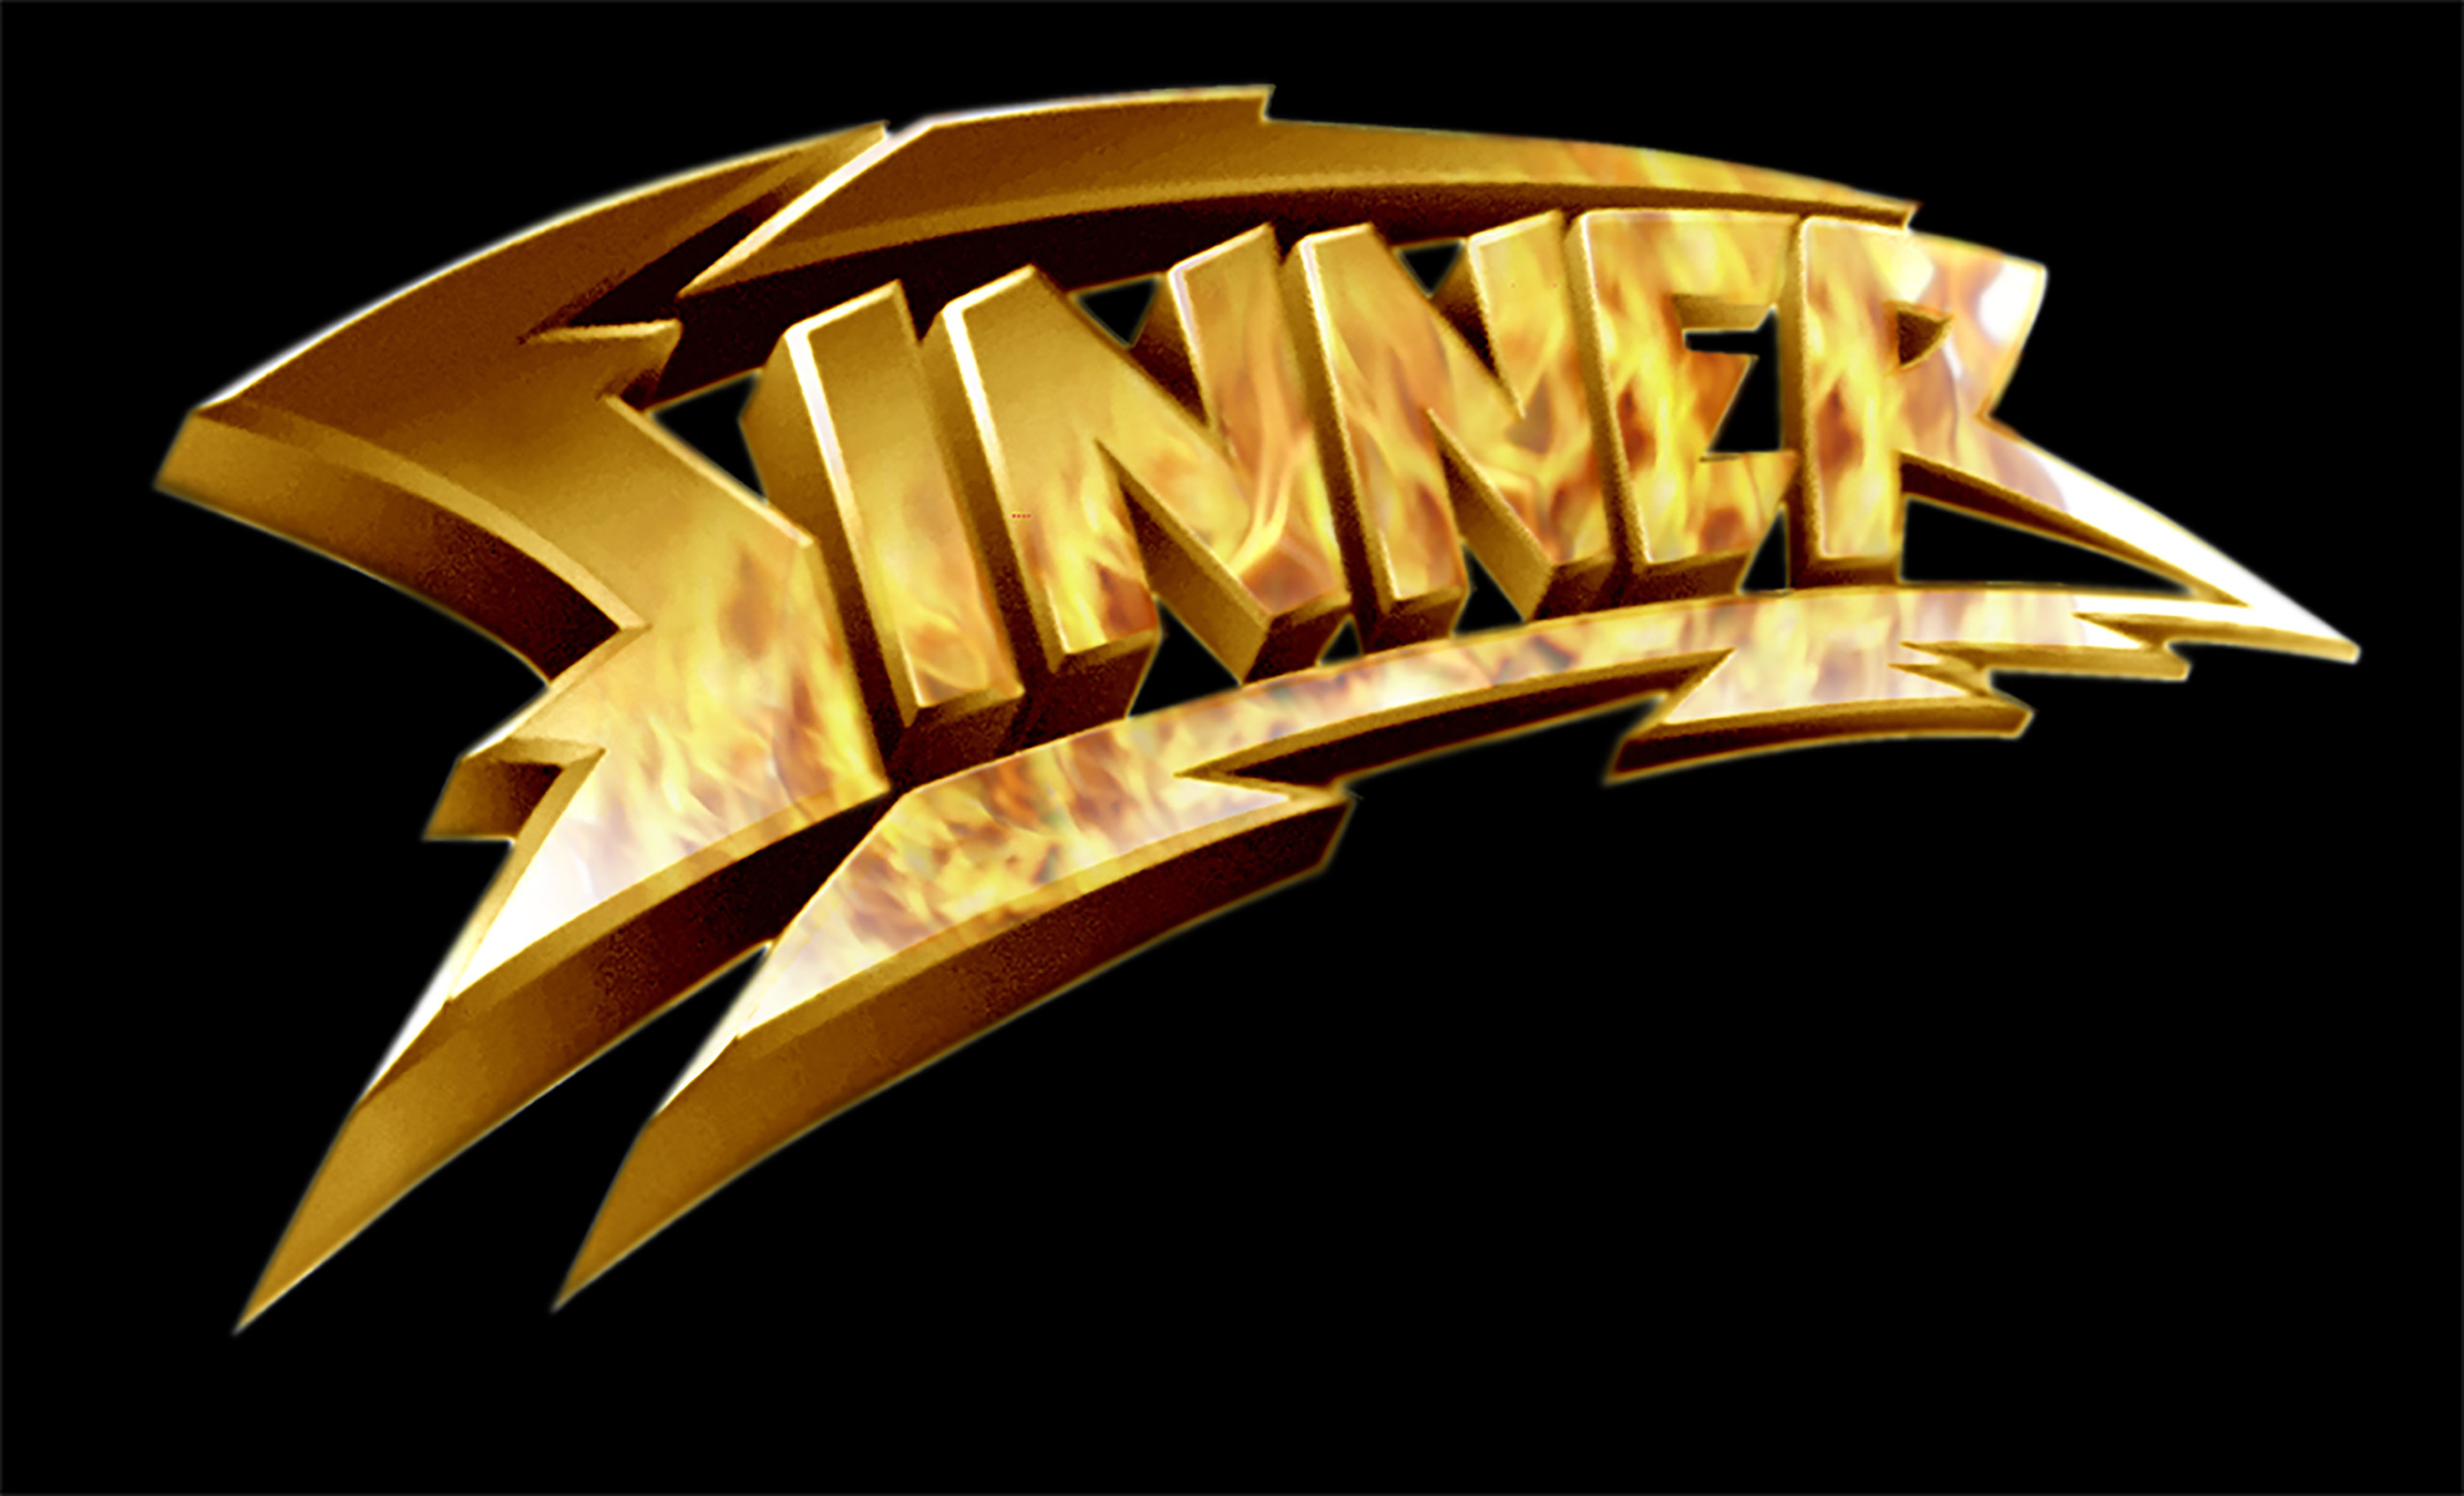 Audioengineering Bands SINNER Logo